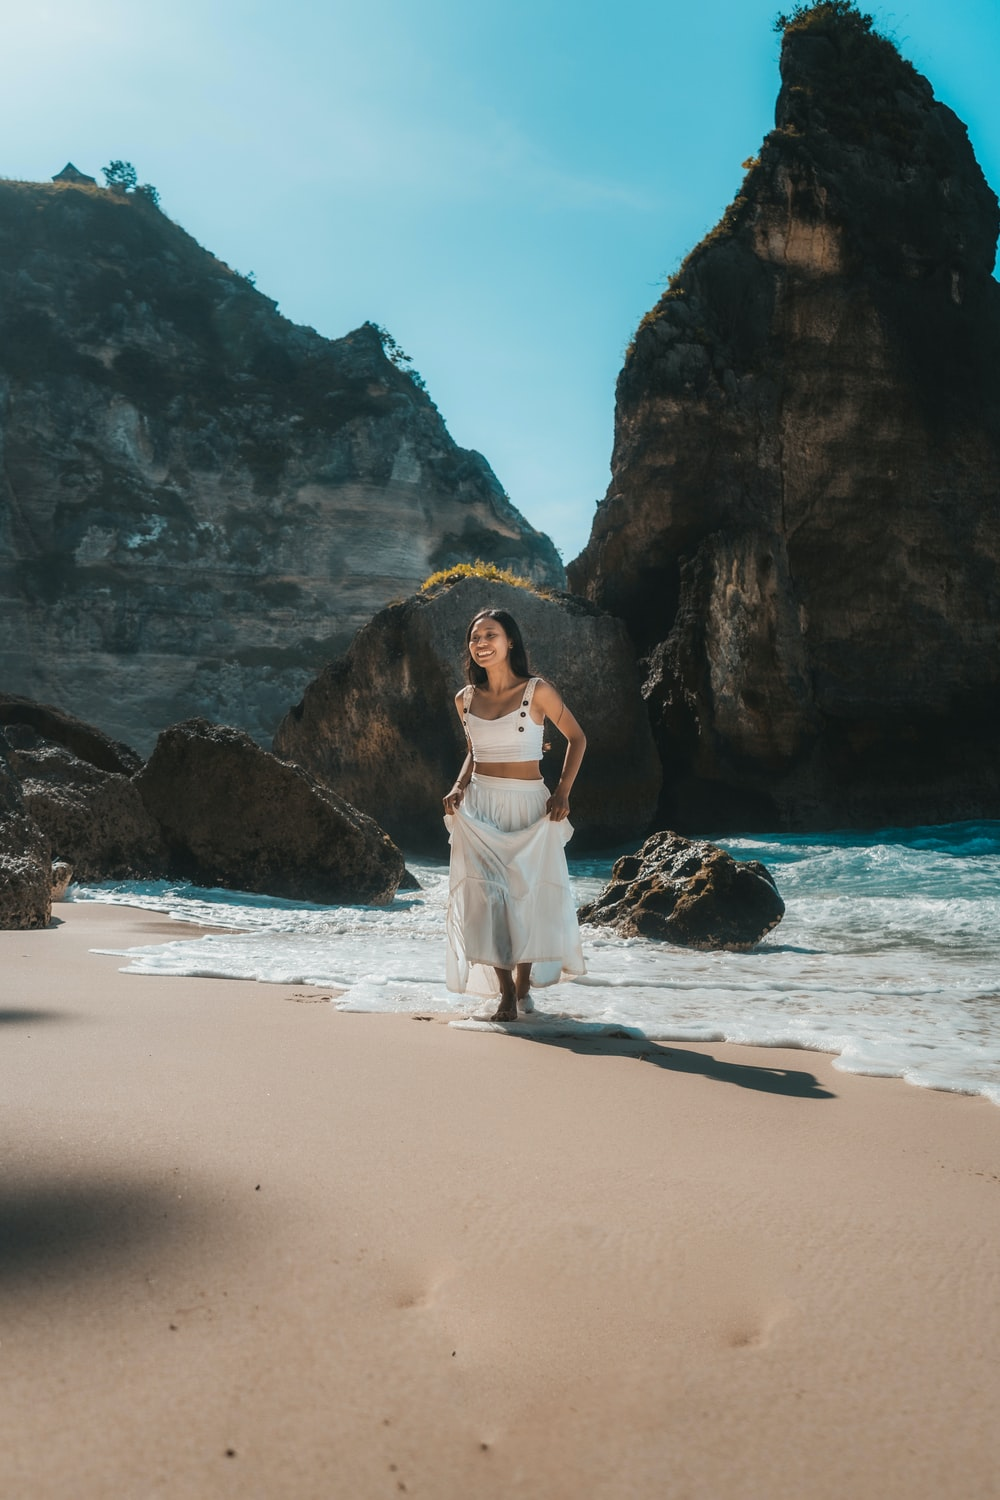 woman in white dress standing on beach during daytime